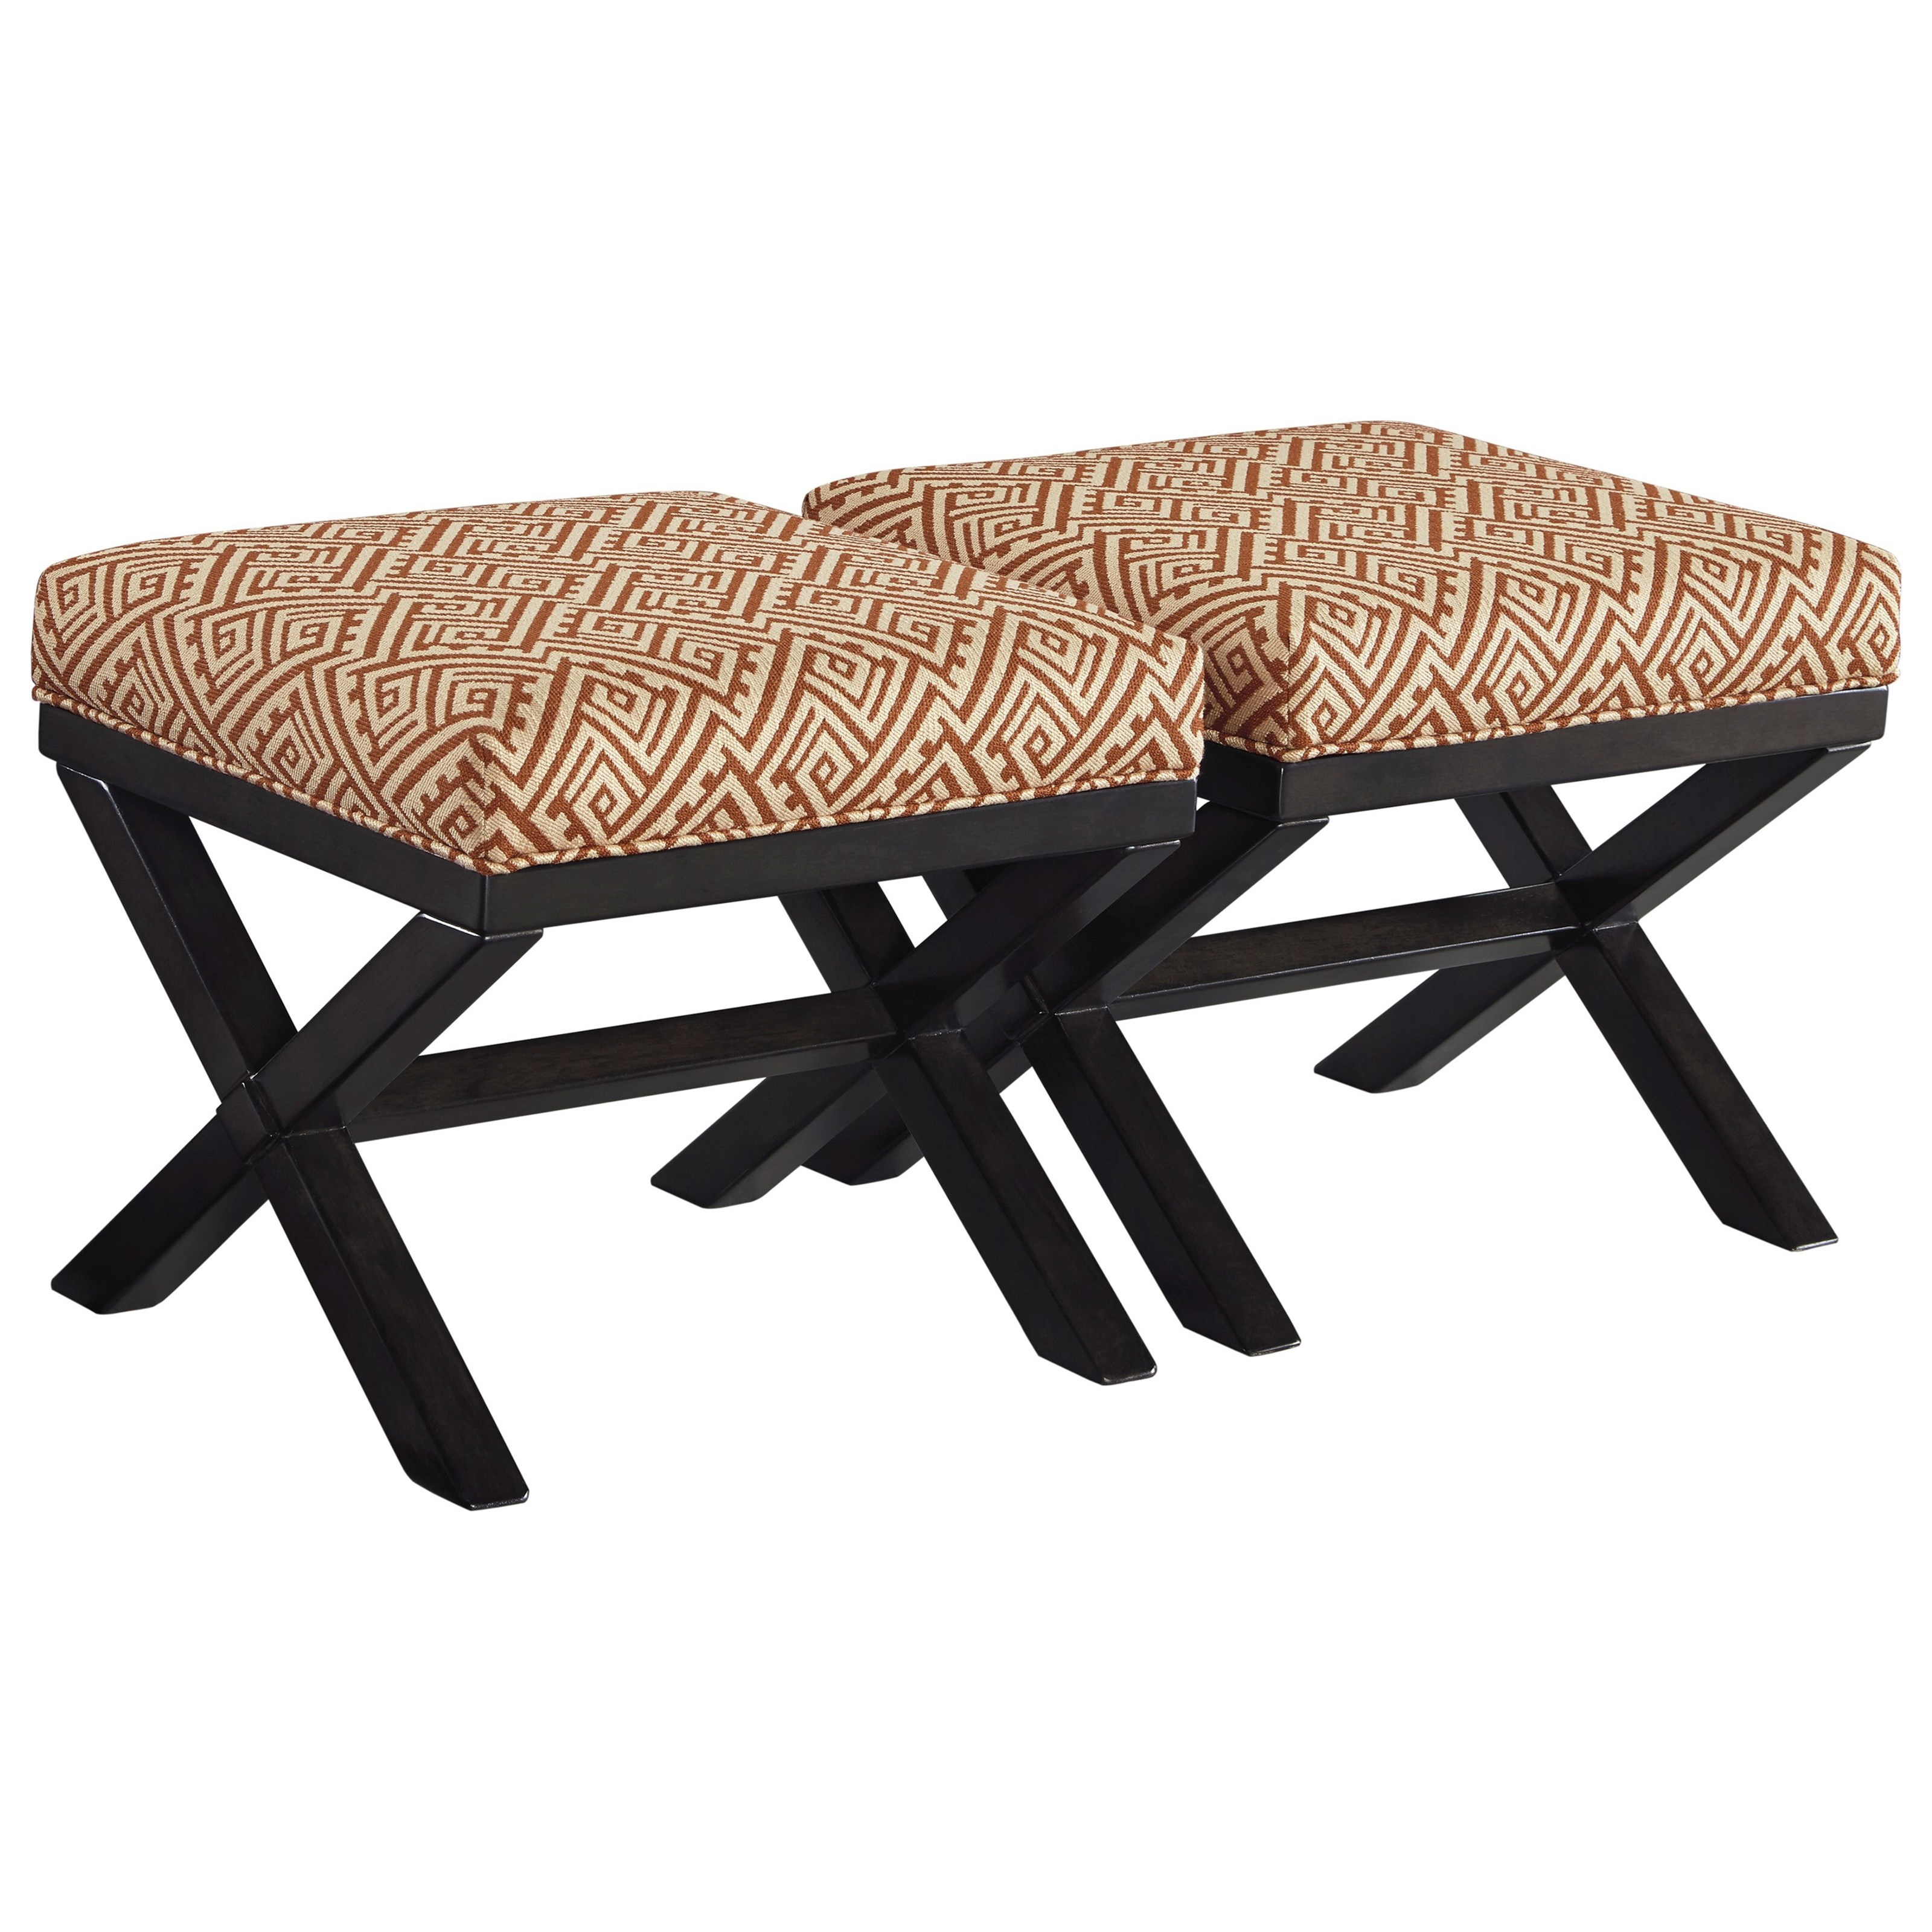 Benchcraft Leola Set of 2 Accent Ottomans - Item Number: 5360113